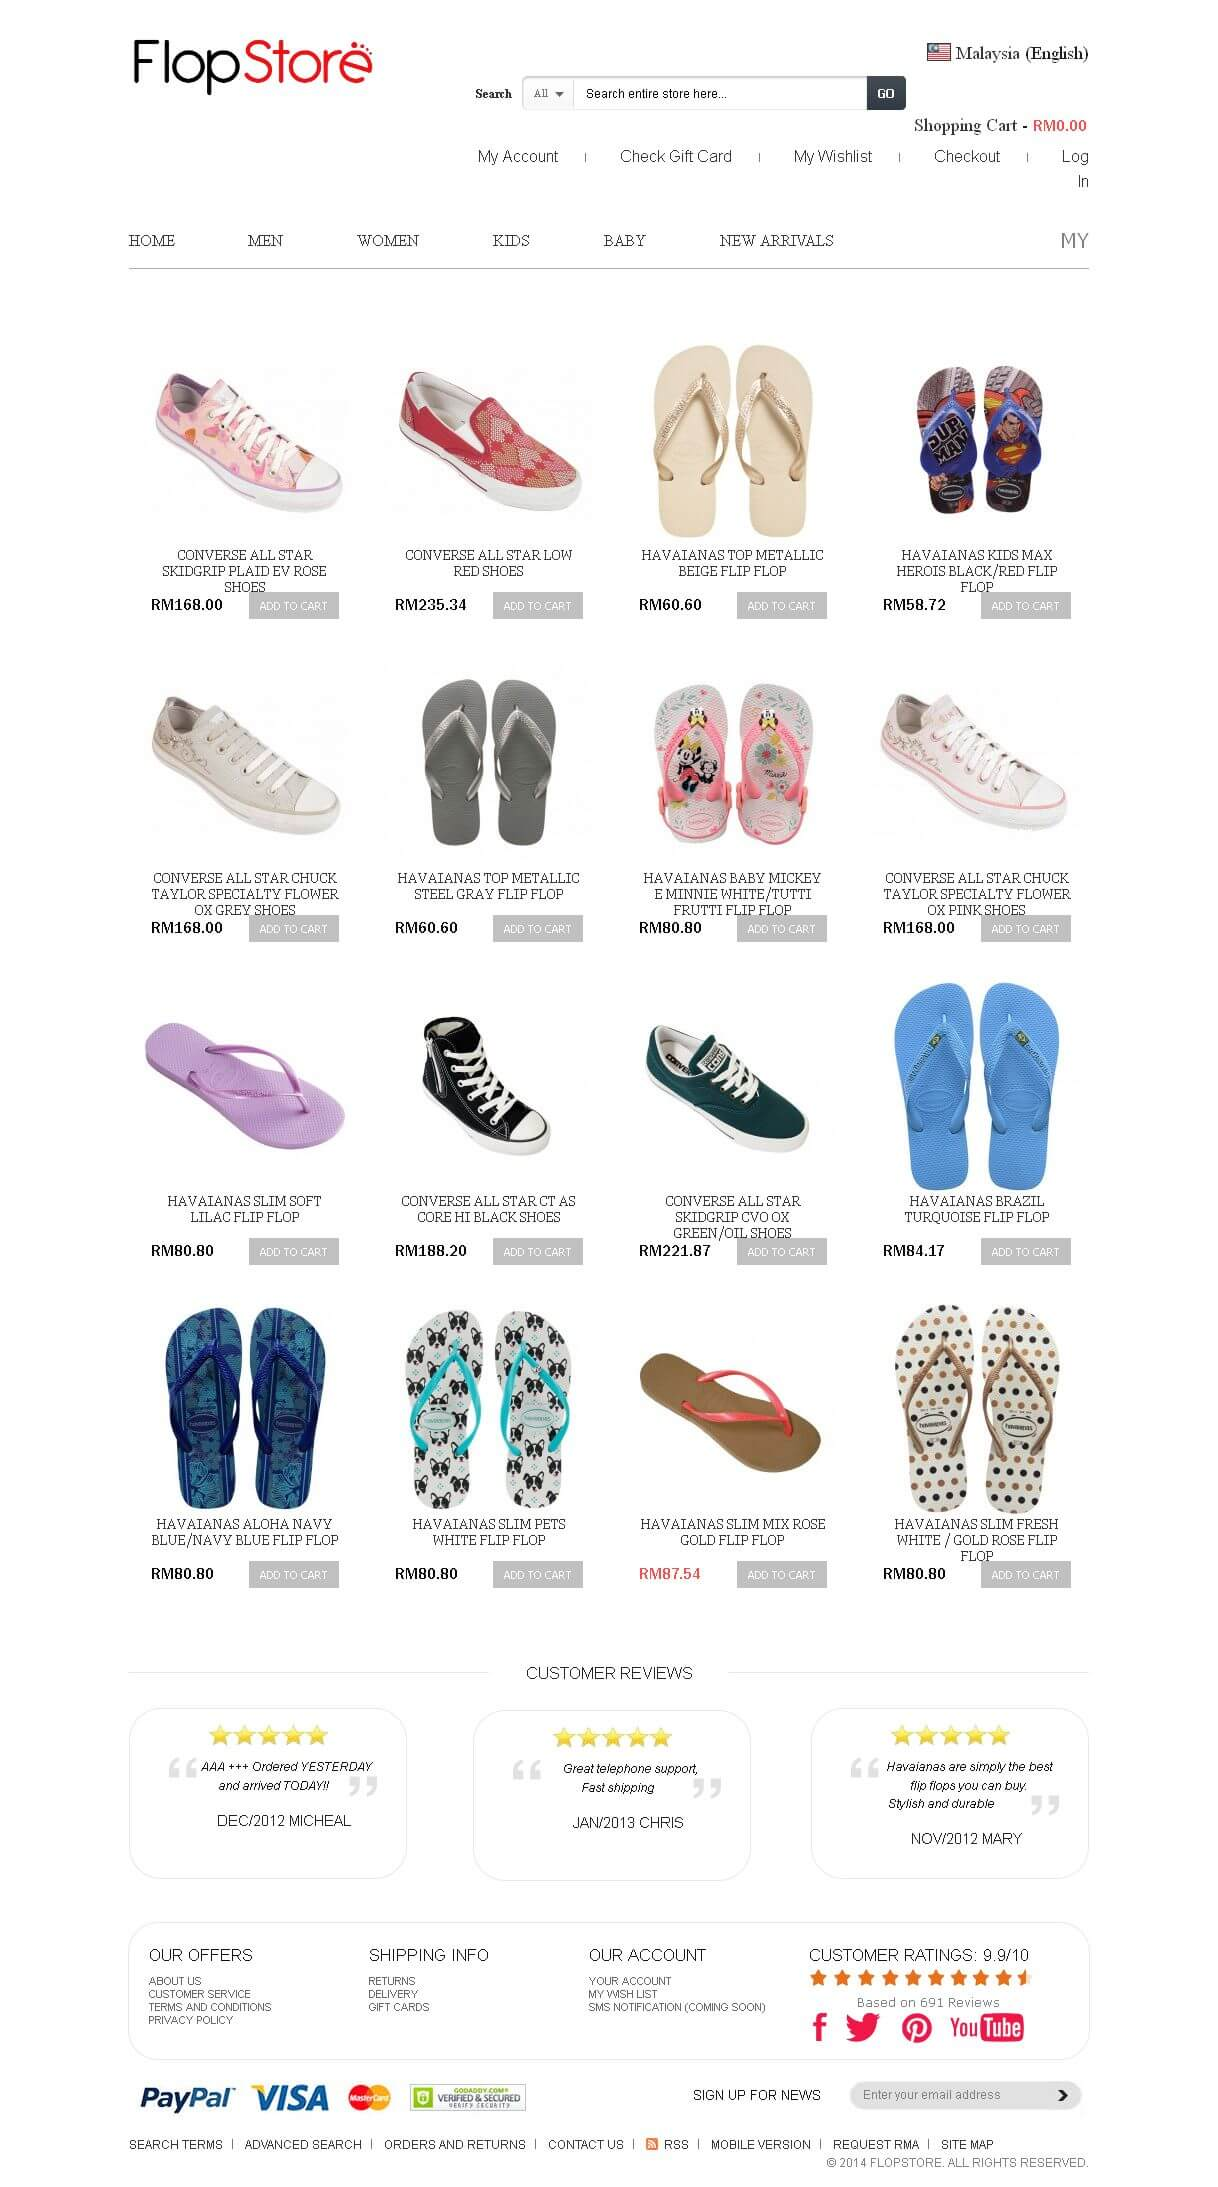 A Magento Based E-commerce Website for Selling Footwear